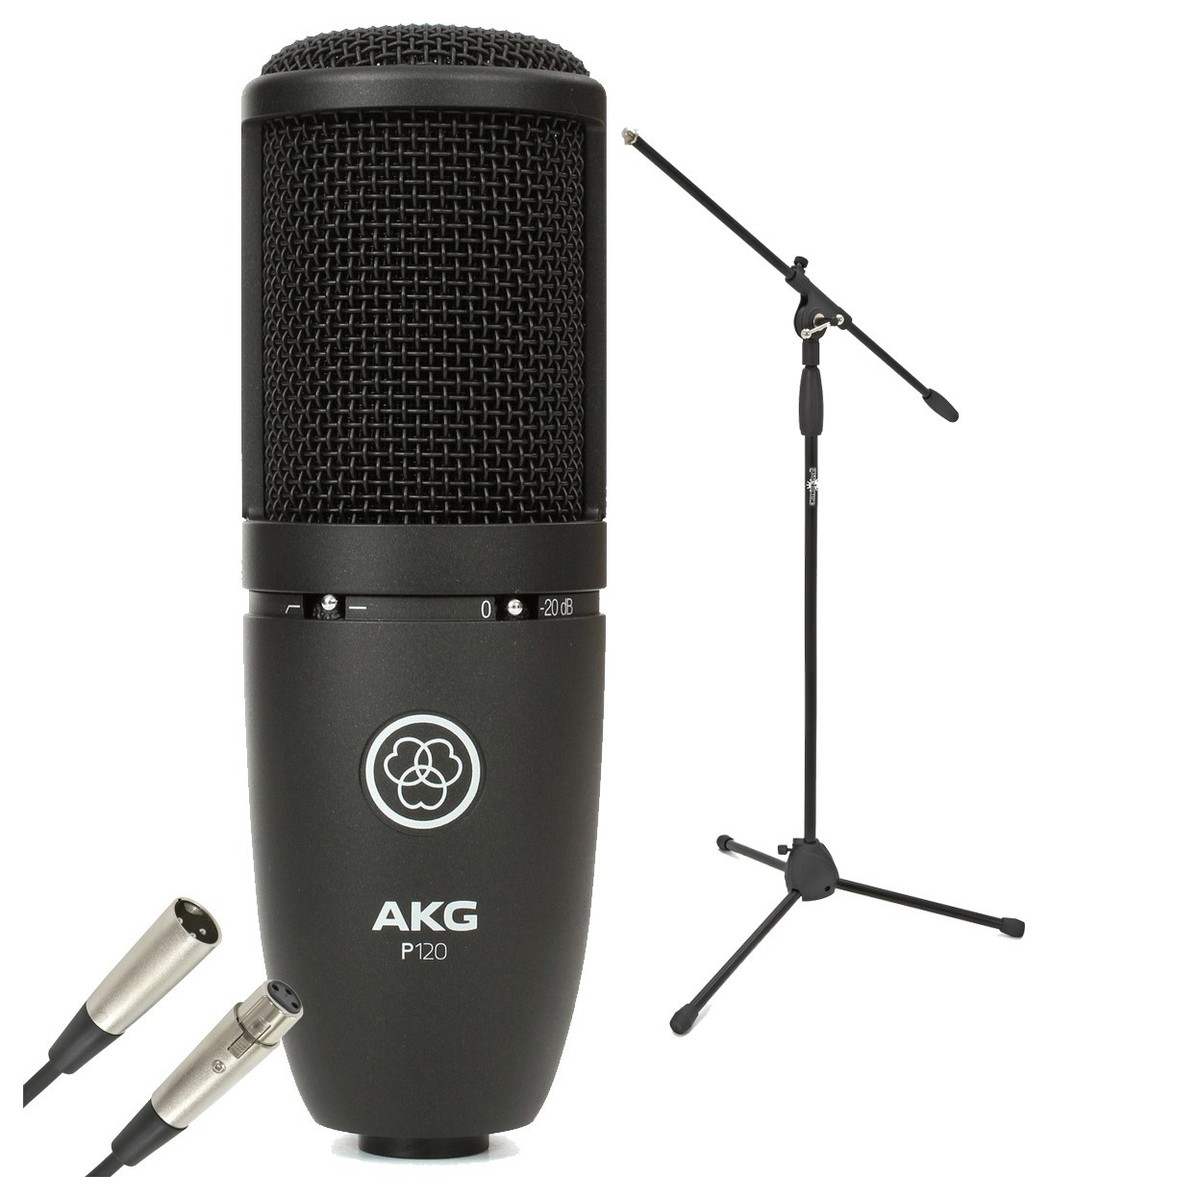 Akg P120 Large Diaphragm Condenser Microphone With Stand Cable At Ribbon Diagram Bundle Loading Zoom